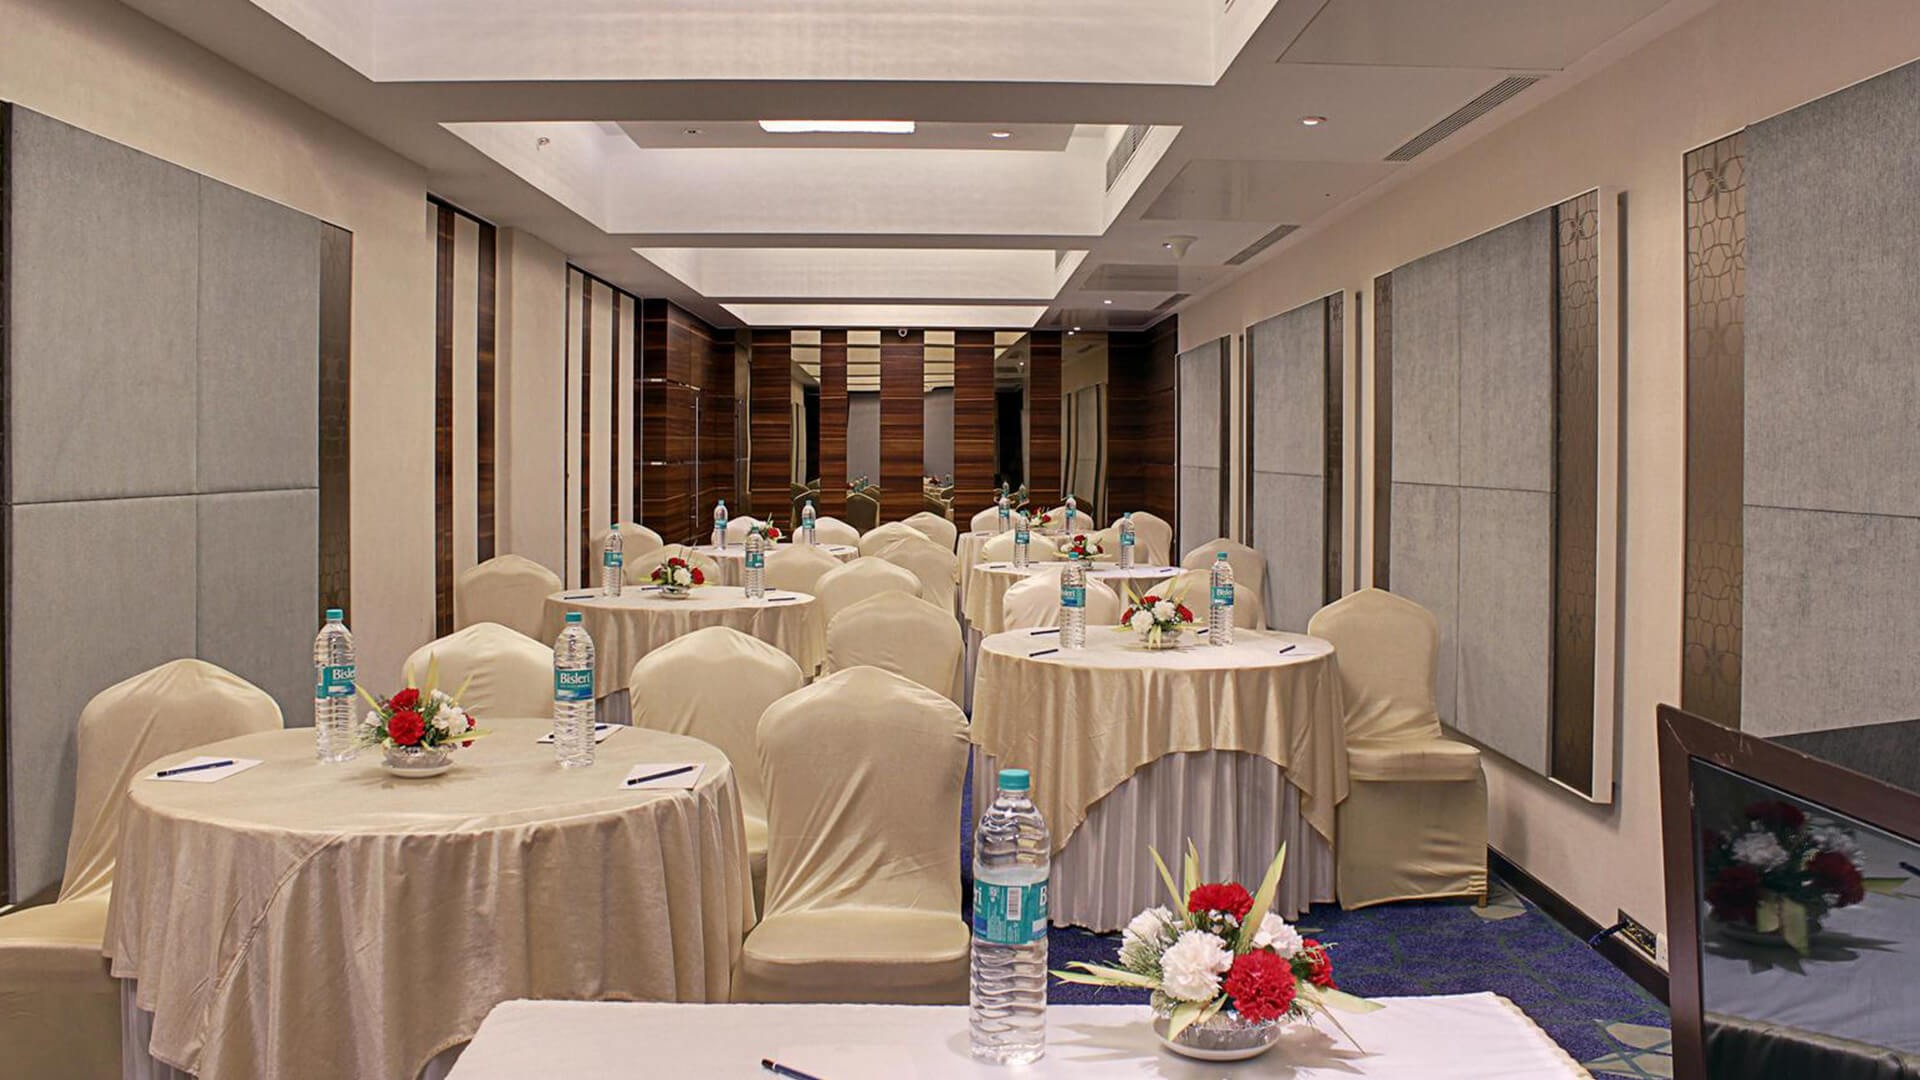 mumbai central hotel package deals, hotel deals in mumbai central, cheap hotels in mumbai near mumbai central railway station, Budget Hotels in mumbai central, hotel in south mumbai